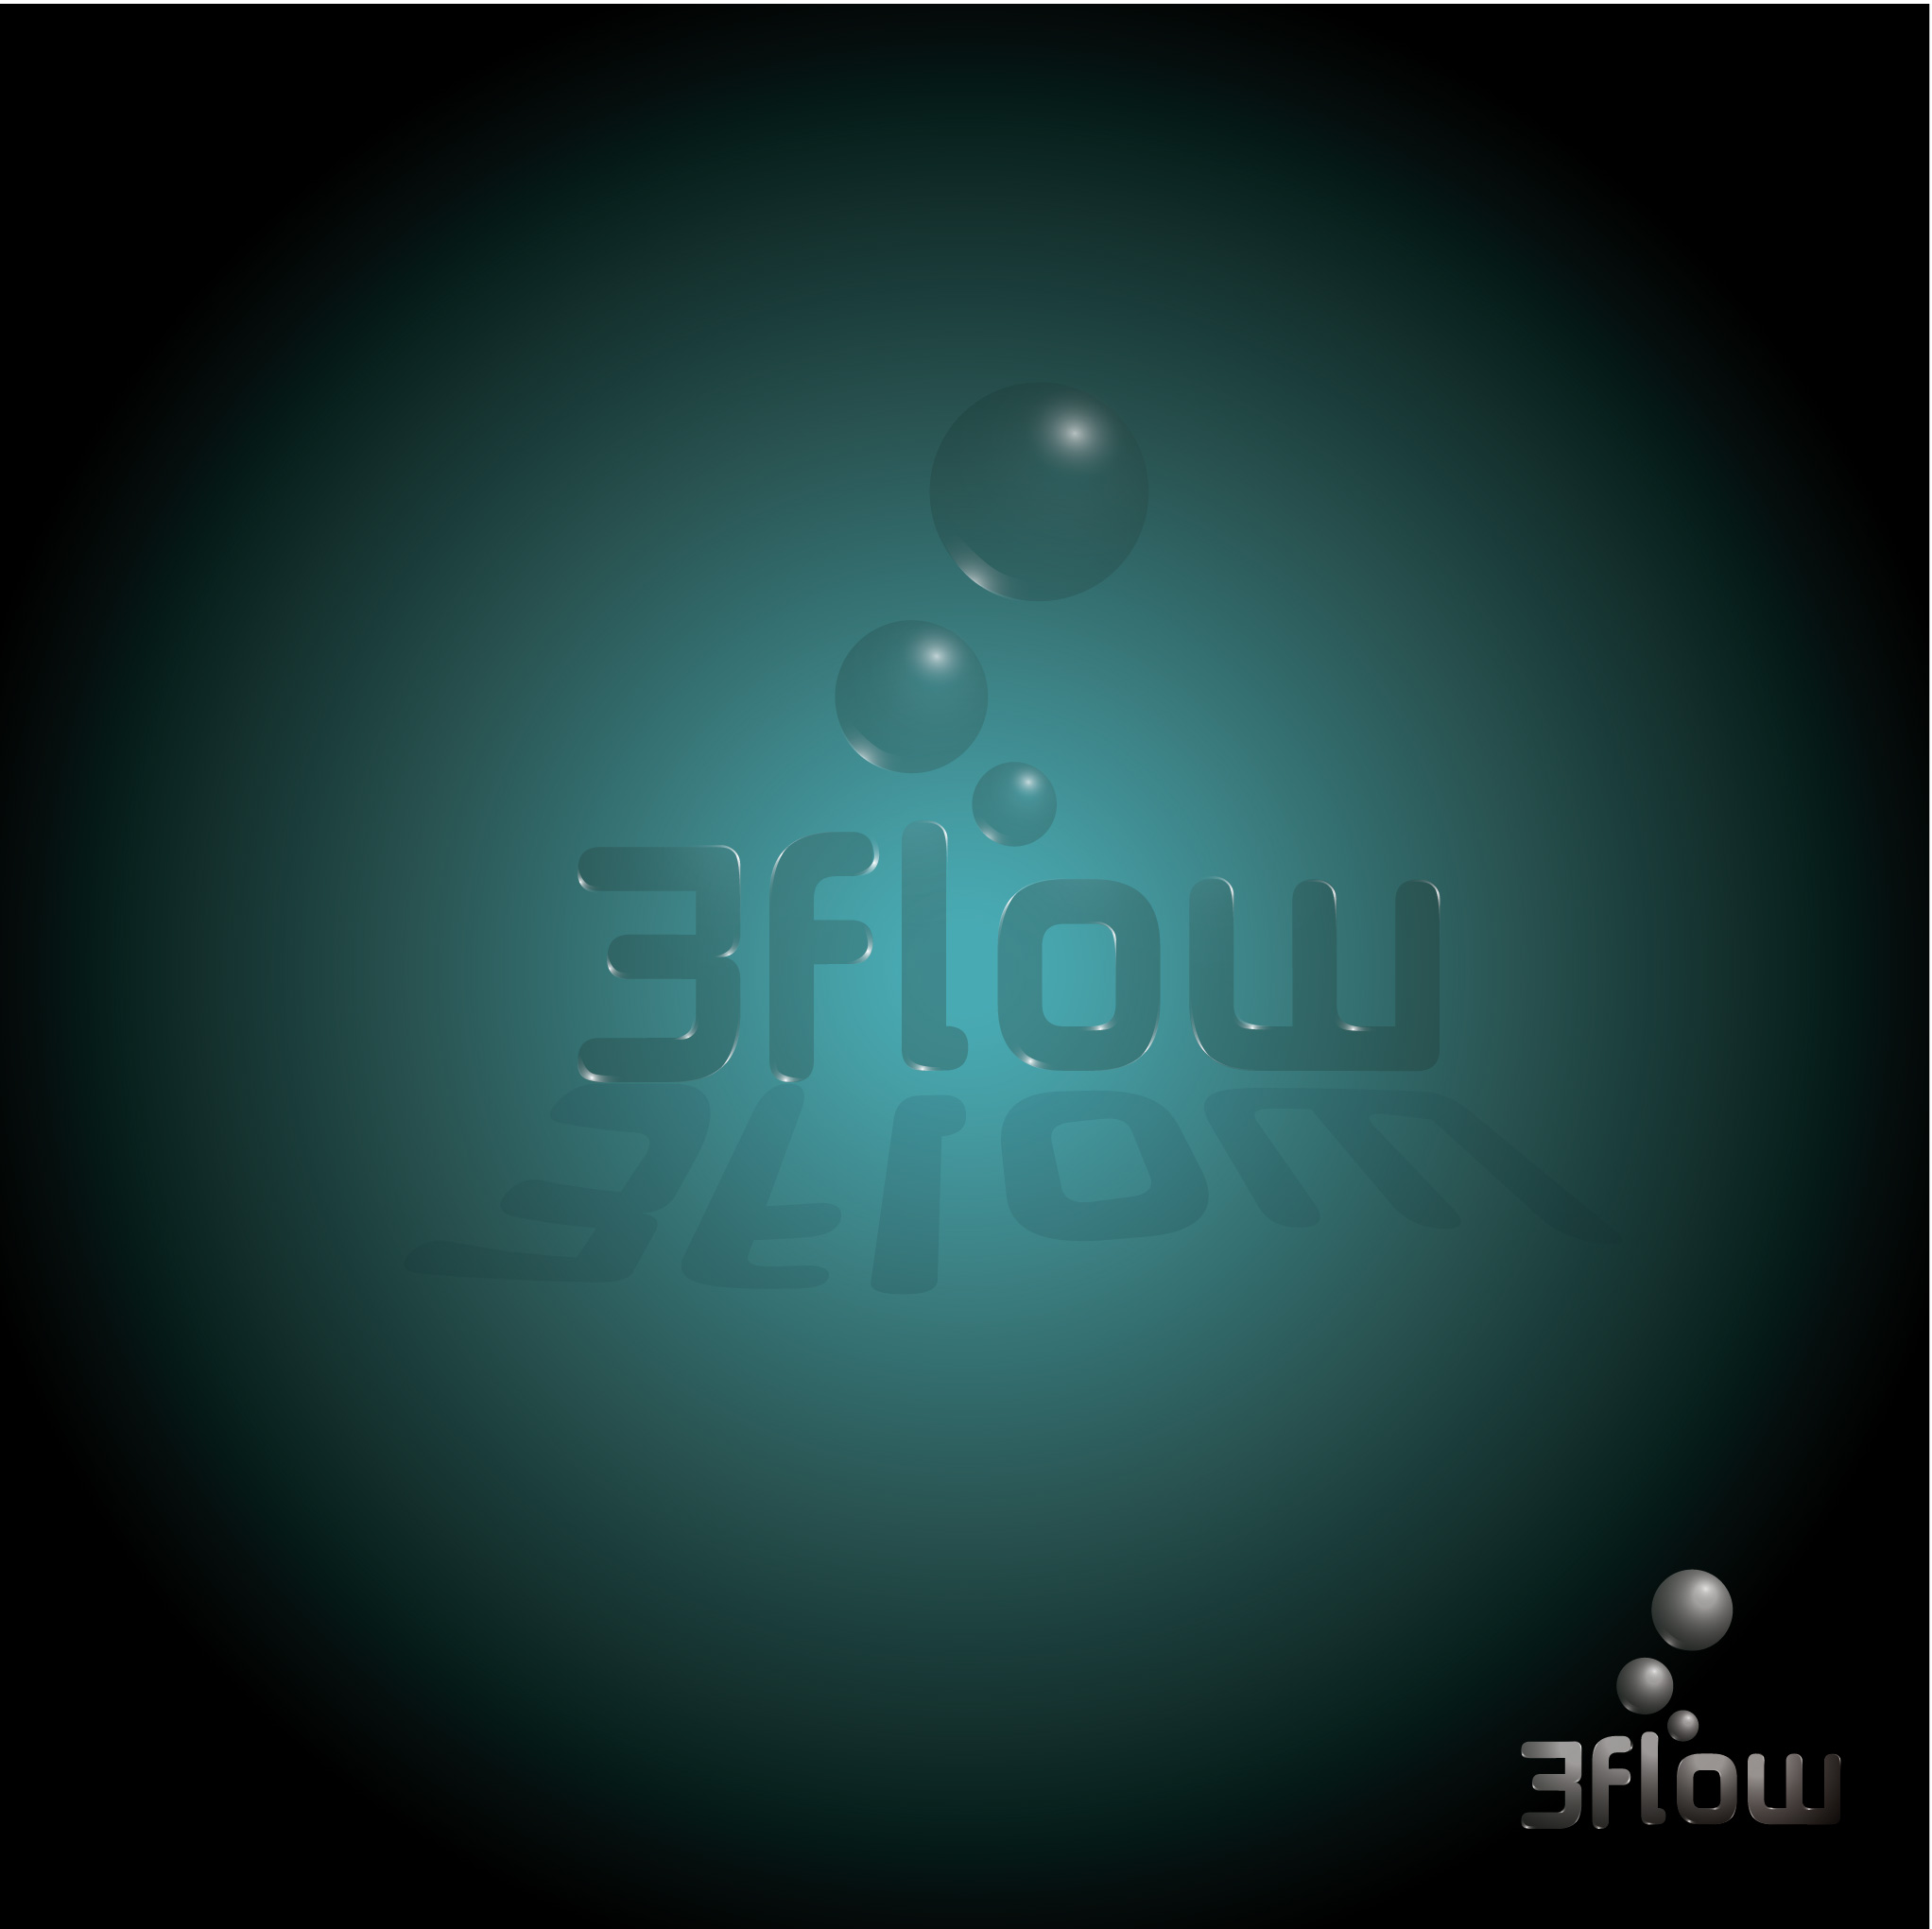 Logo Design by kowreck - Entry No. 60 in the Logo Design Contest Fun Logo Design for 3flow.